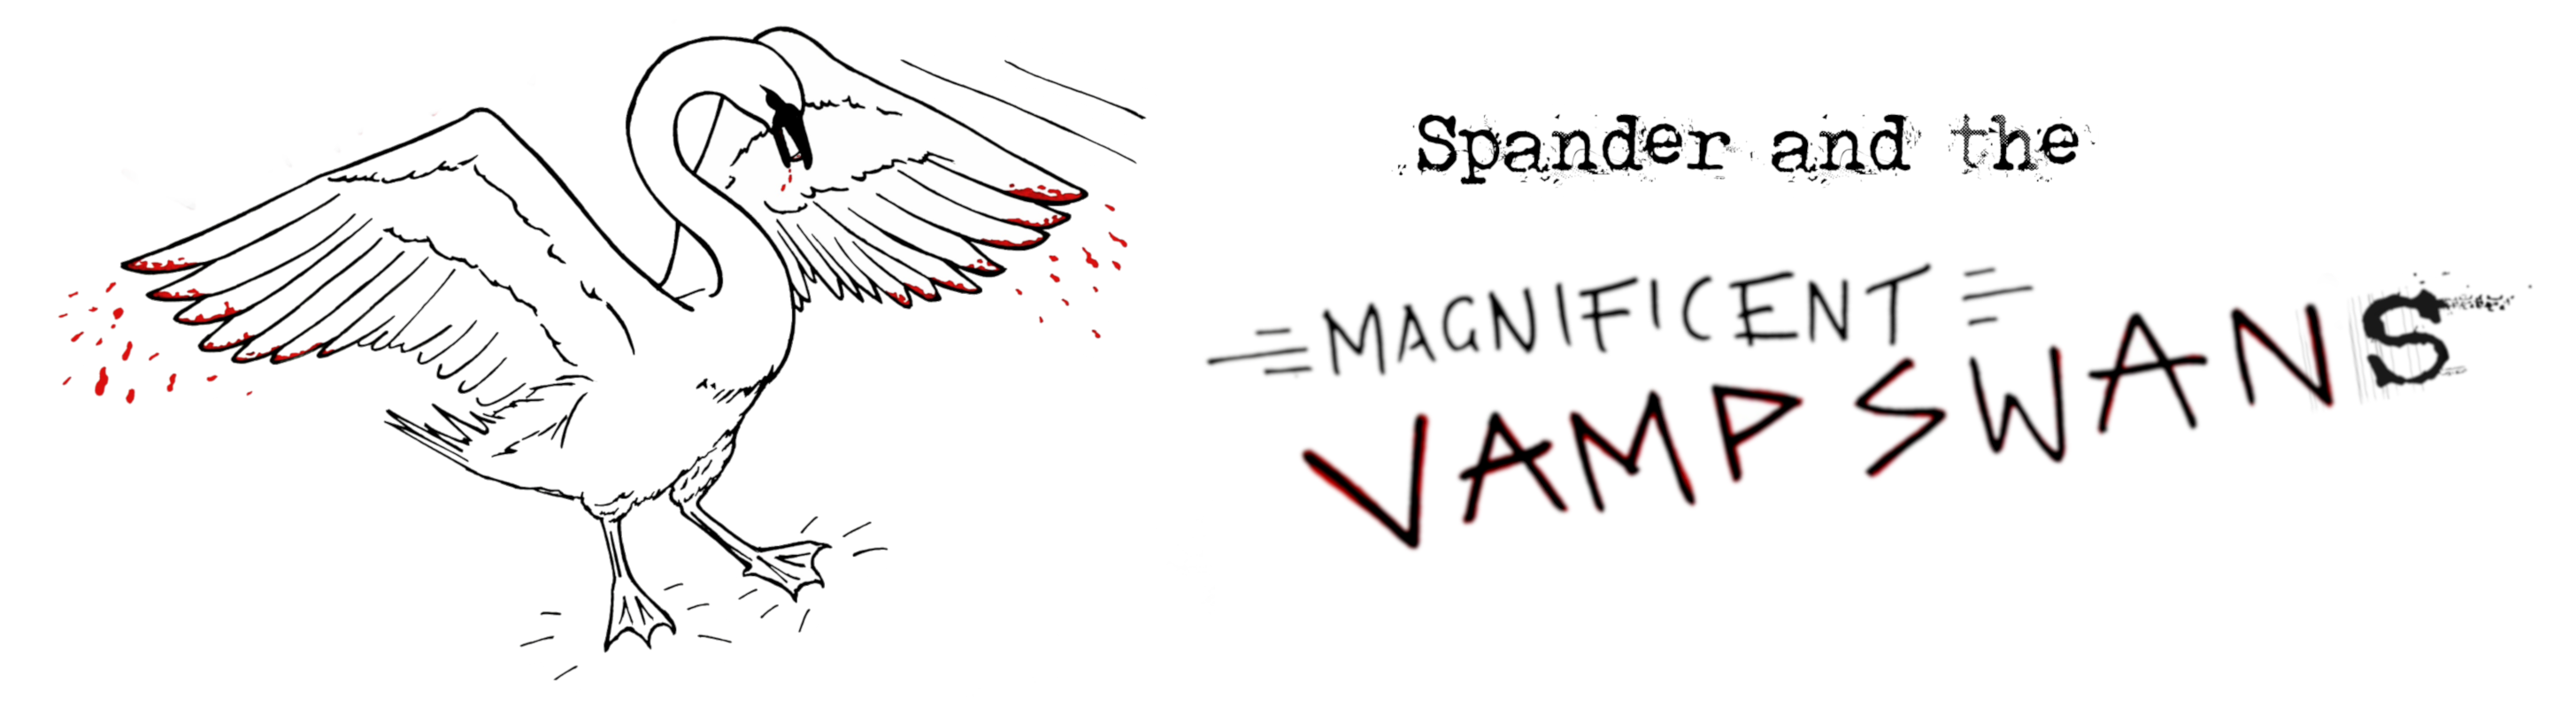 Spander and the Magnificent Vampswans